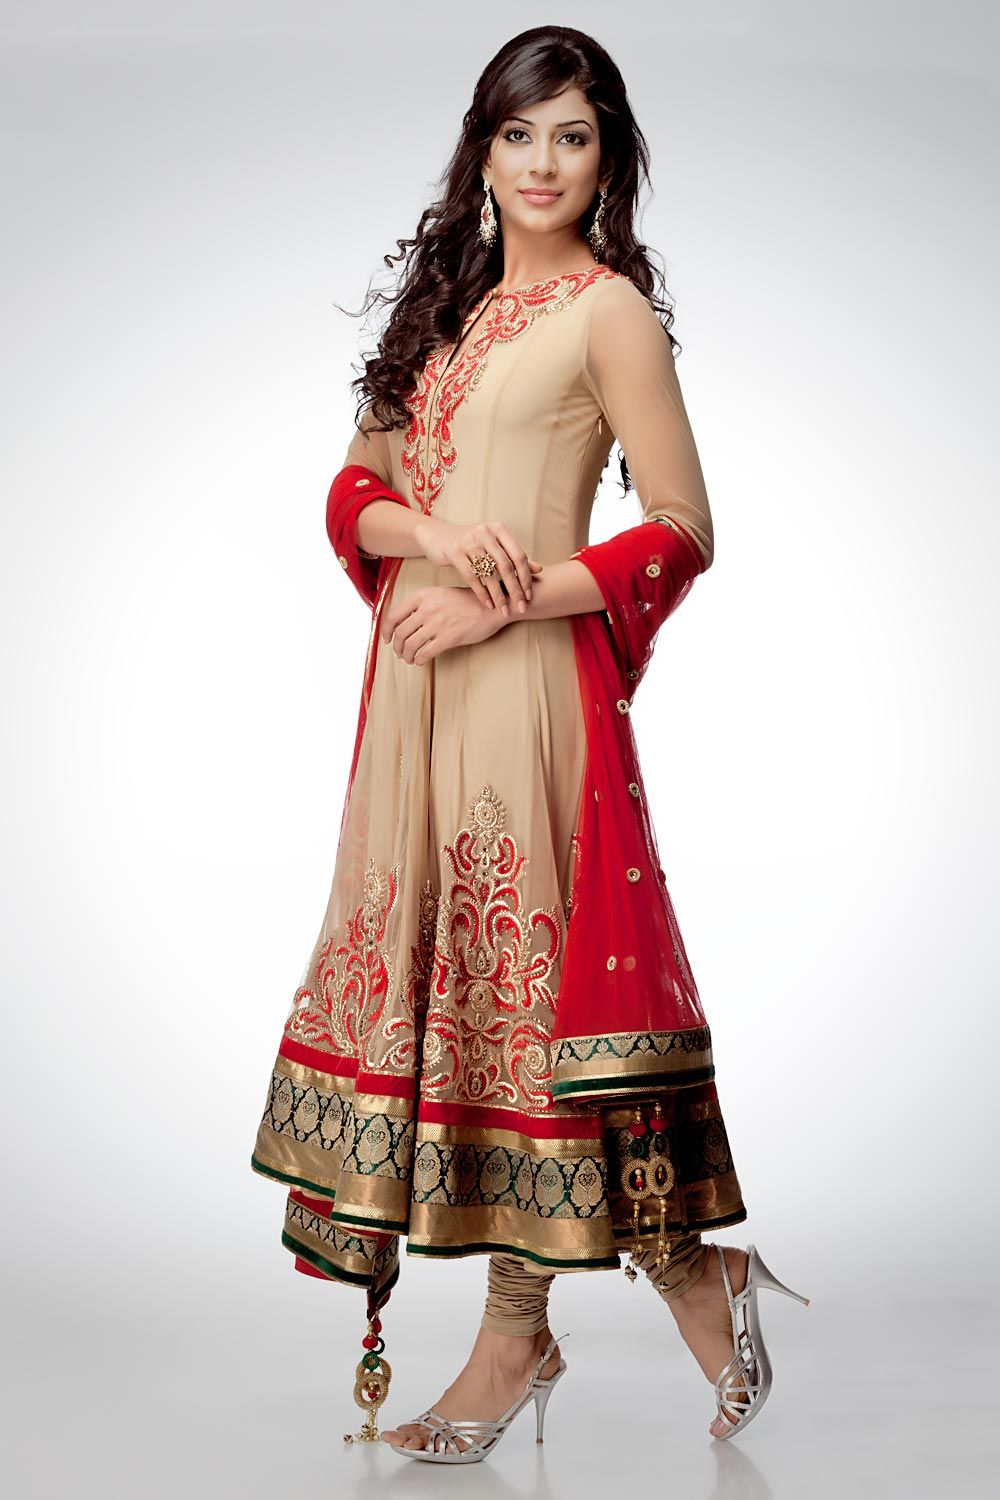 10 Best images about Indian dress on Pinterest - Indian bollywood ...